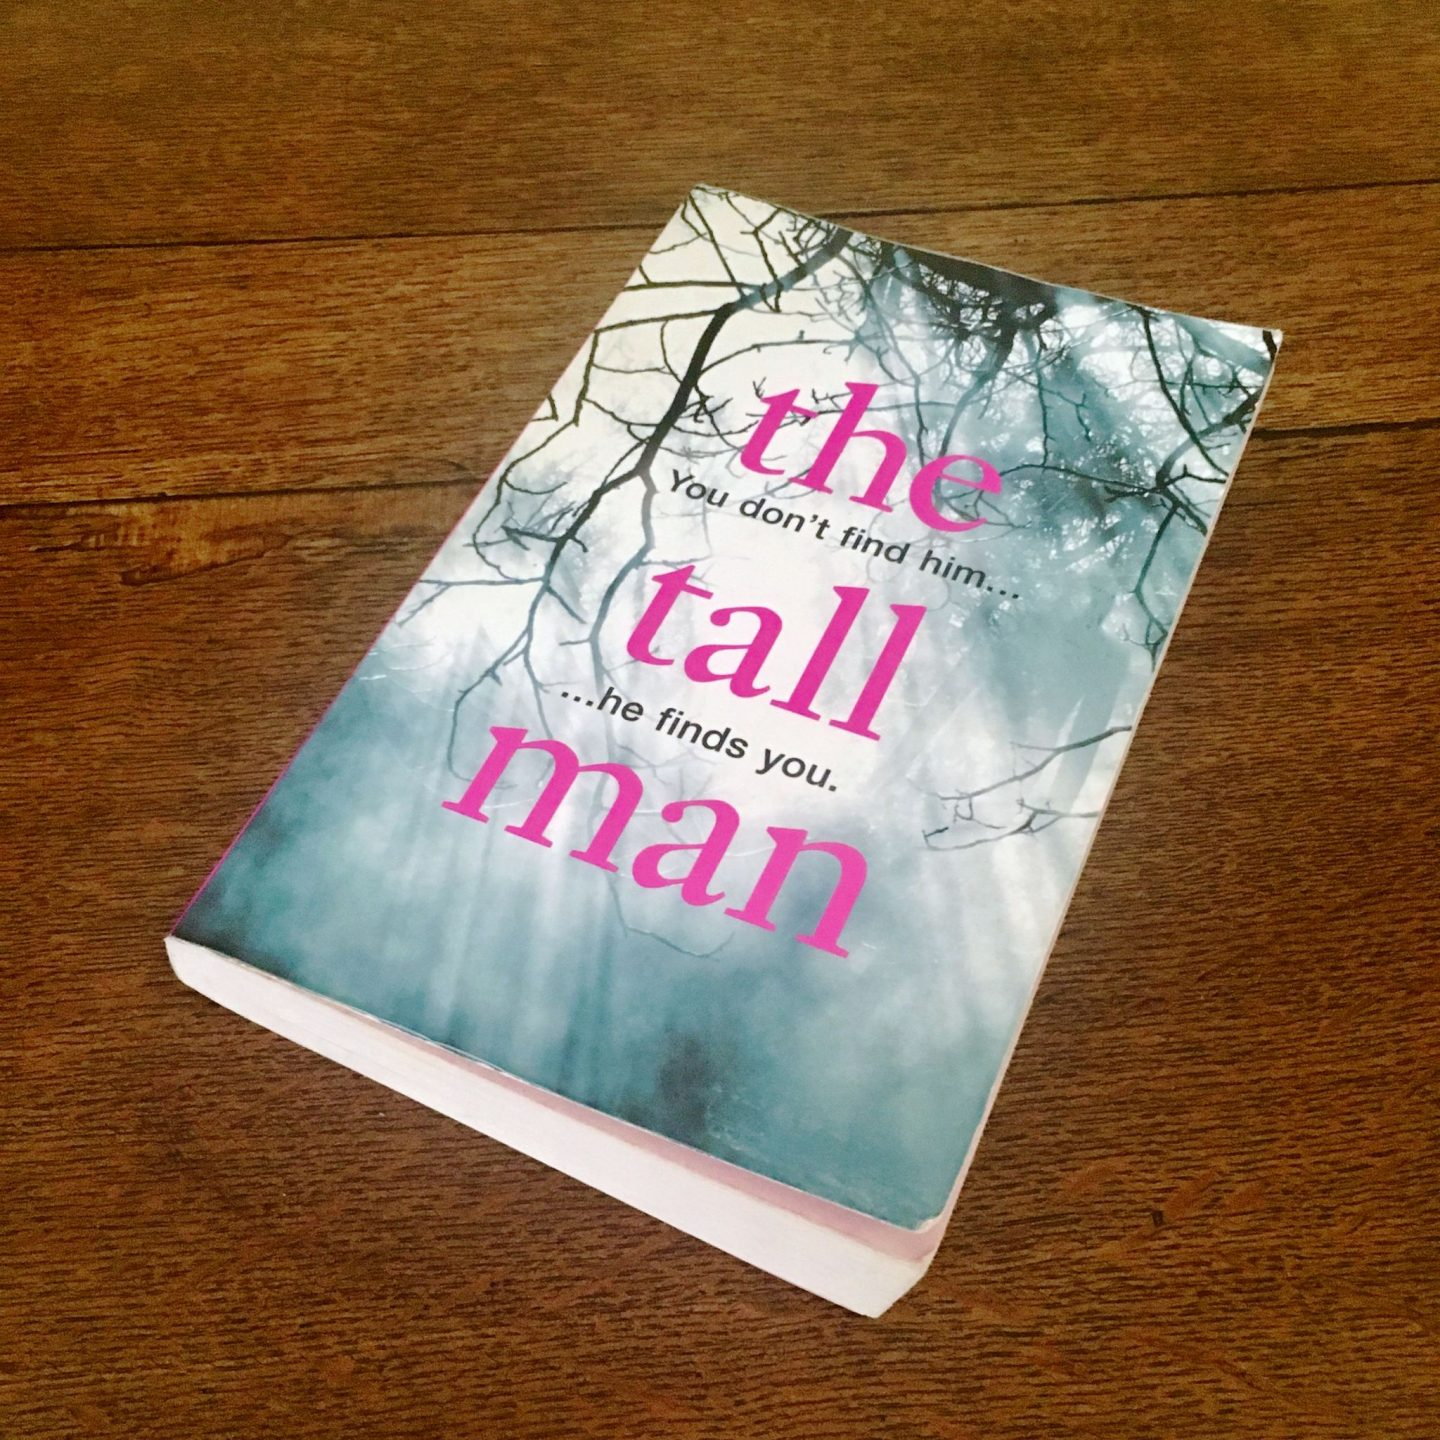 New Voices 2018: The Tall Man